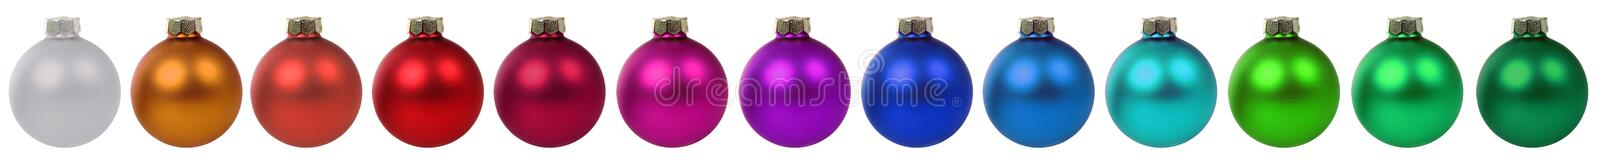 Colorful Christmas balls baubles decoration border in a row isol royalty free stock image